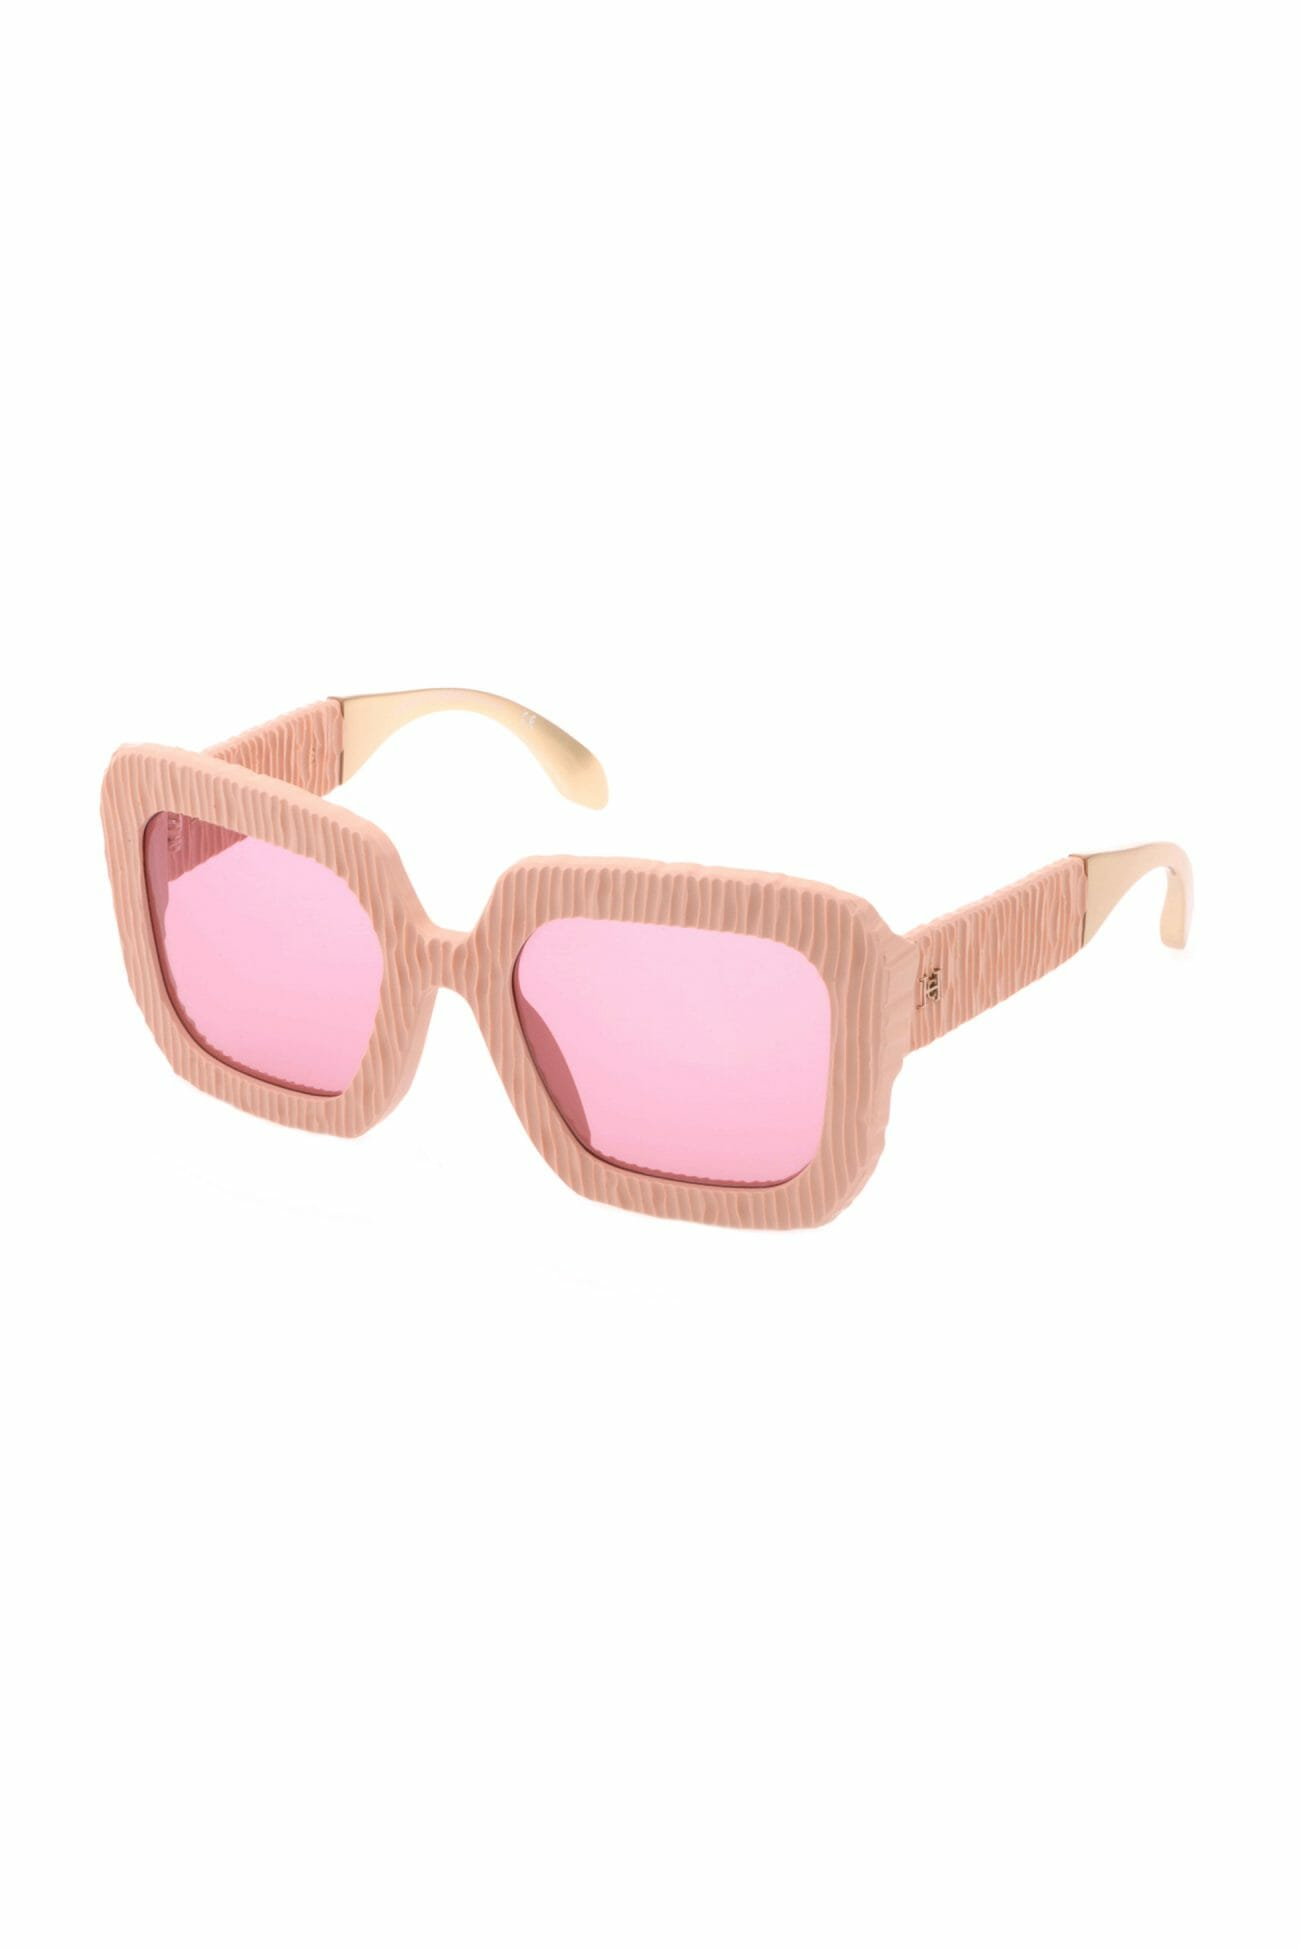 Sunglasses square in pink color